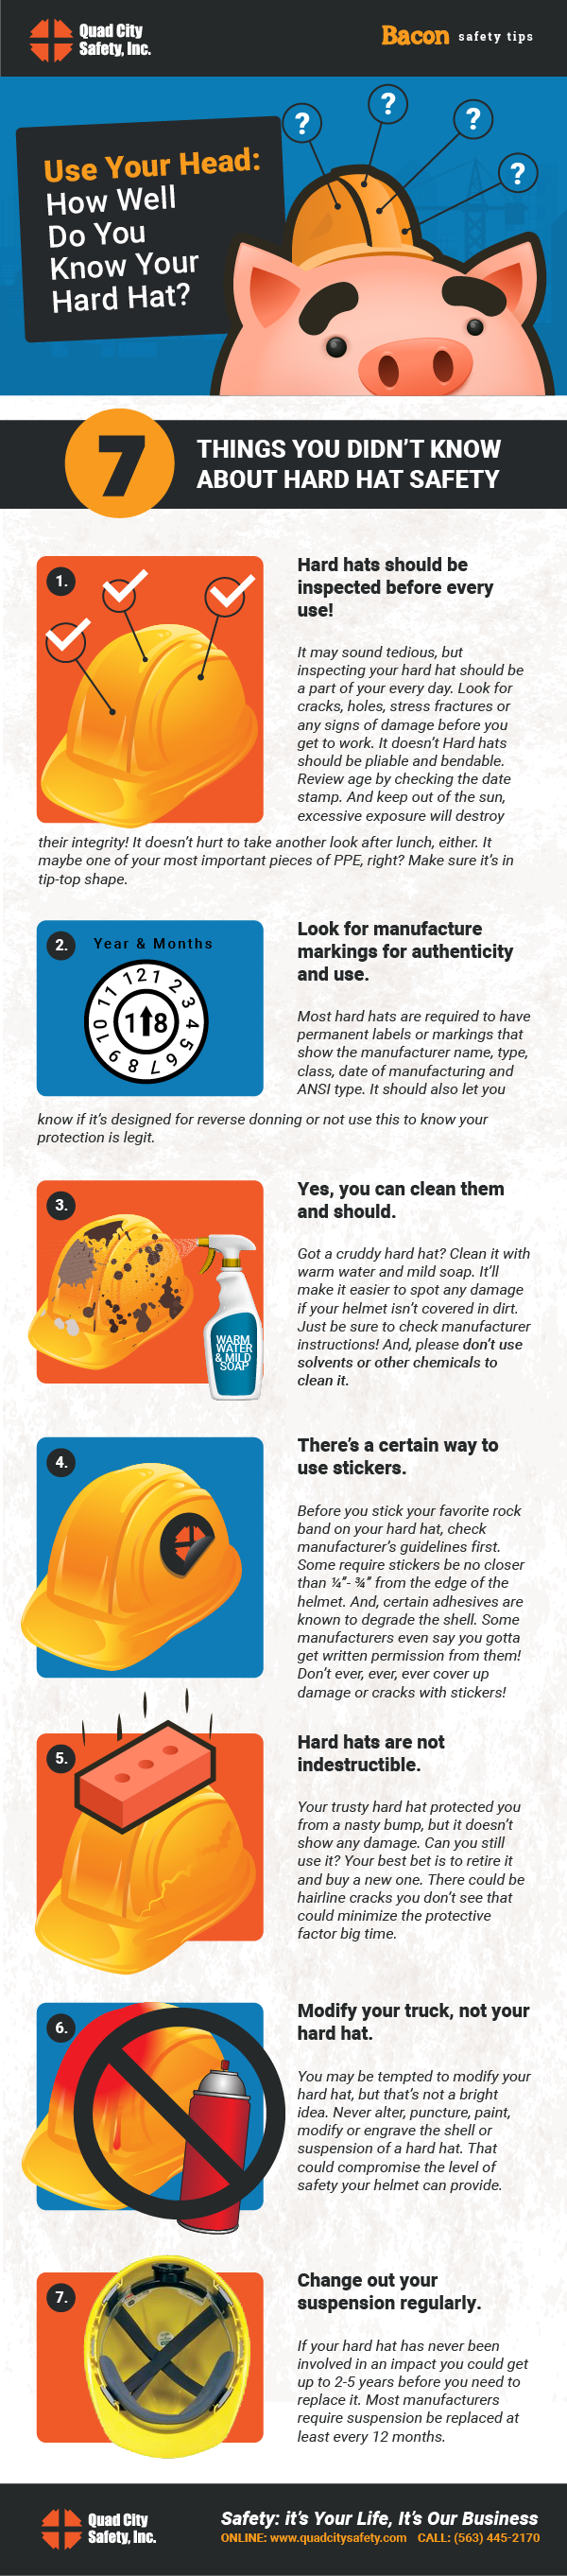 Bacon's-Safety-Tips-C05-Hard Hat-Infographic